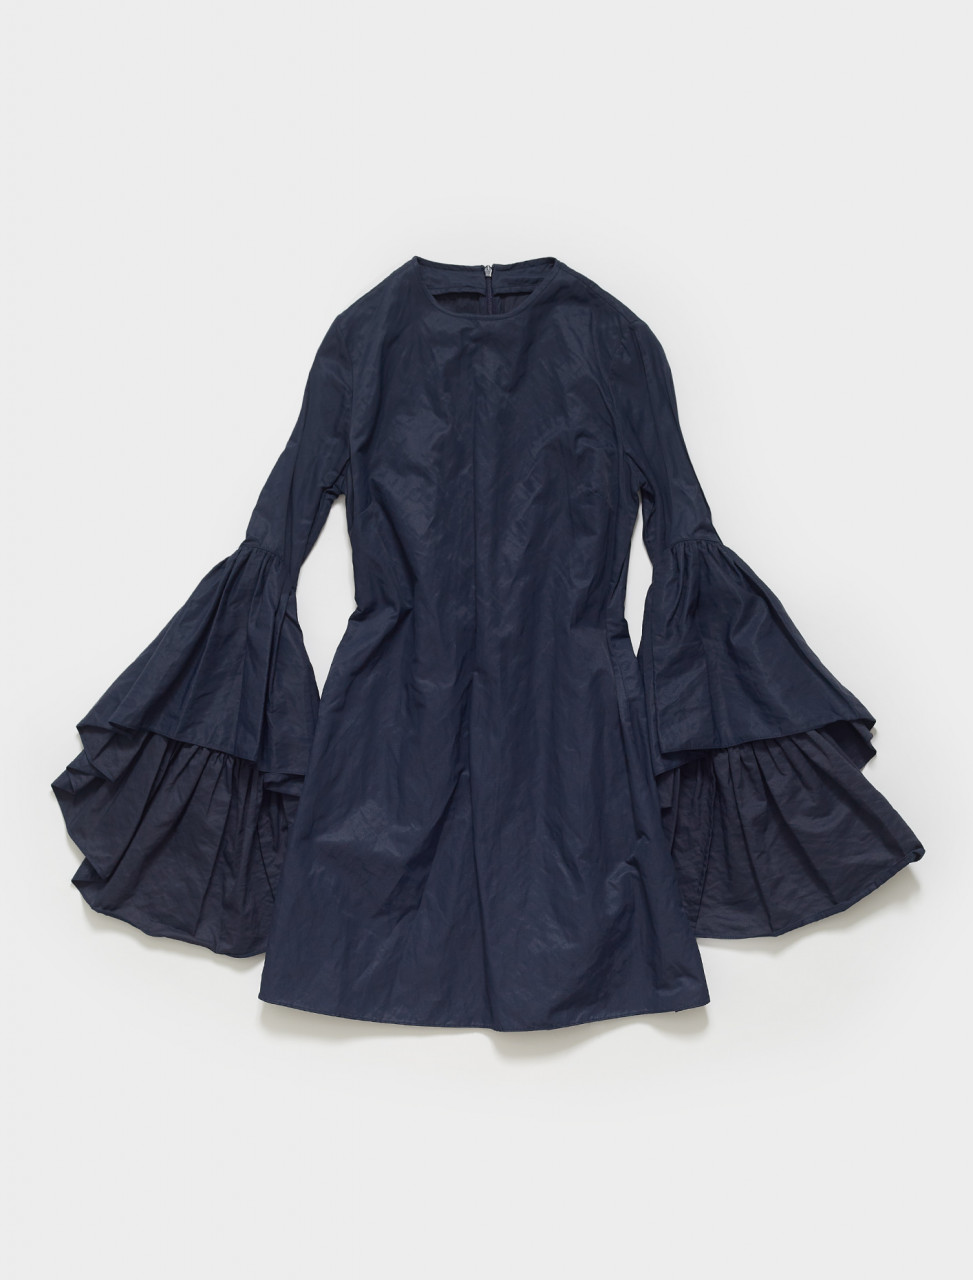 138-RST18DR0042TFT MARQUES ALMEIDA OYSTER SLEEVE DRESS IN NAVY